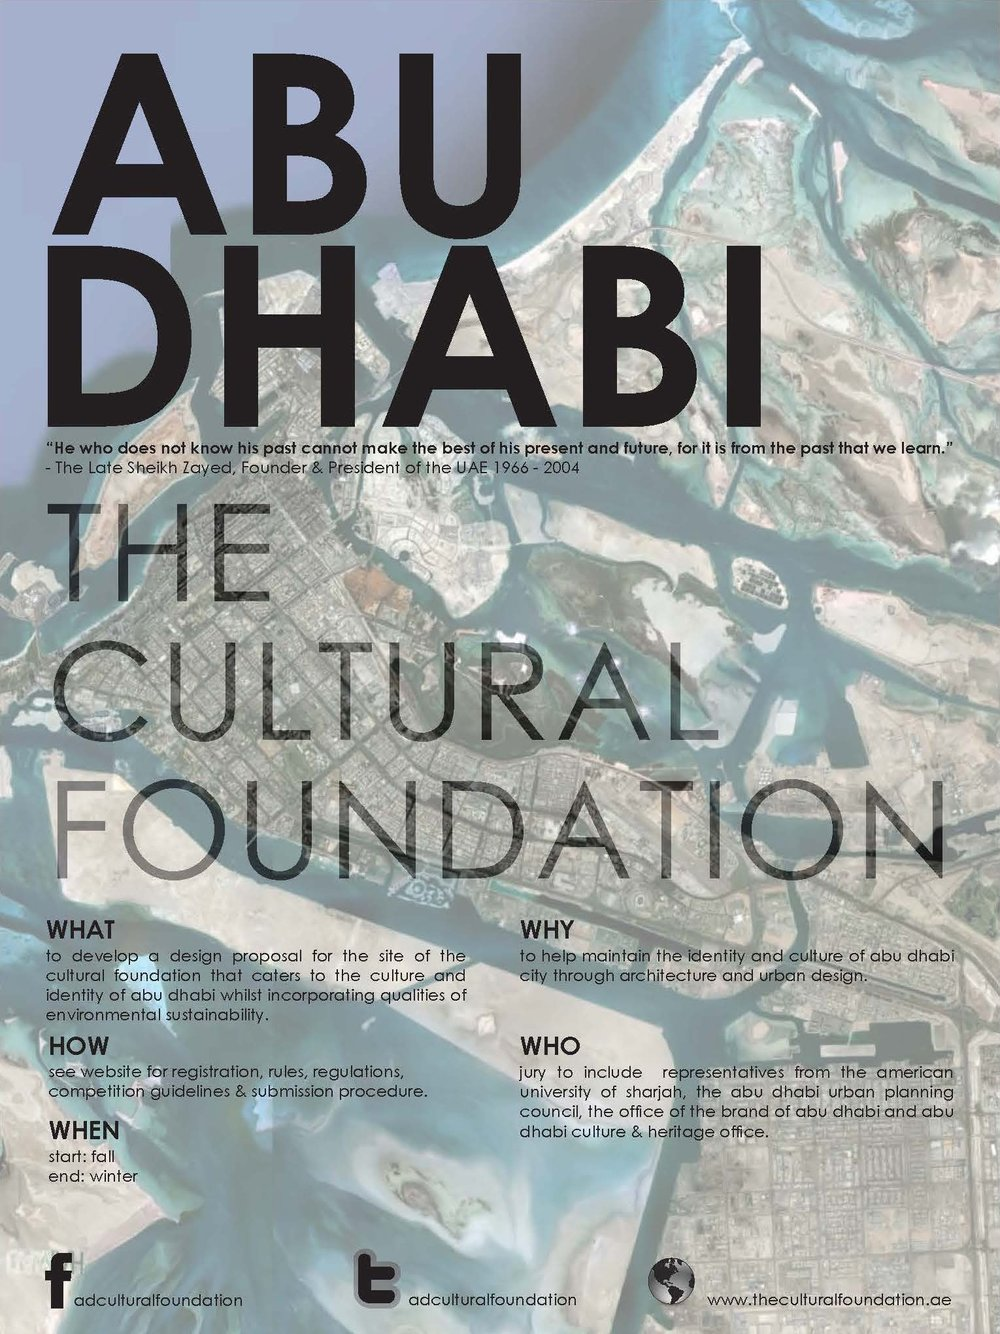 Abu Dhabi: Urban Regeneration Considering Cultural Identity. Poster Design Concept. Independent Research 2012